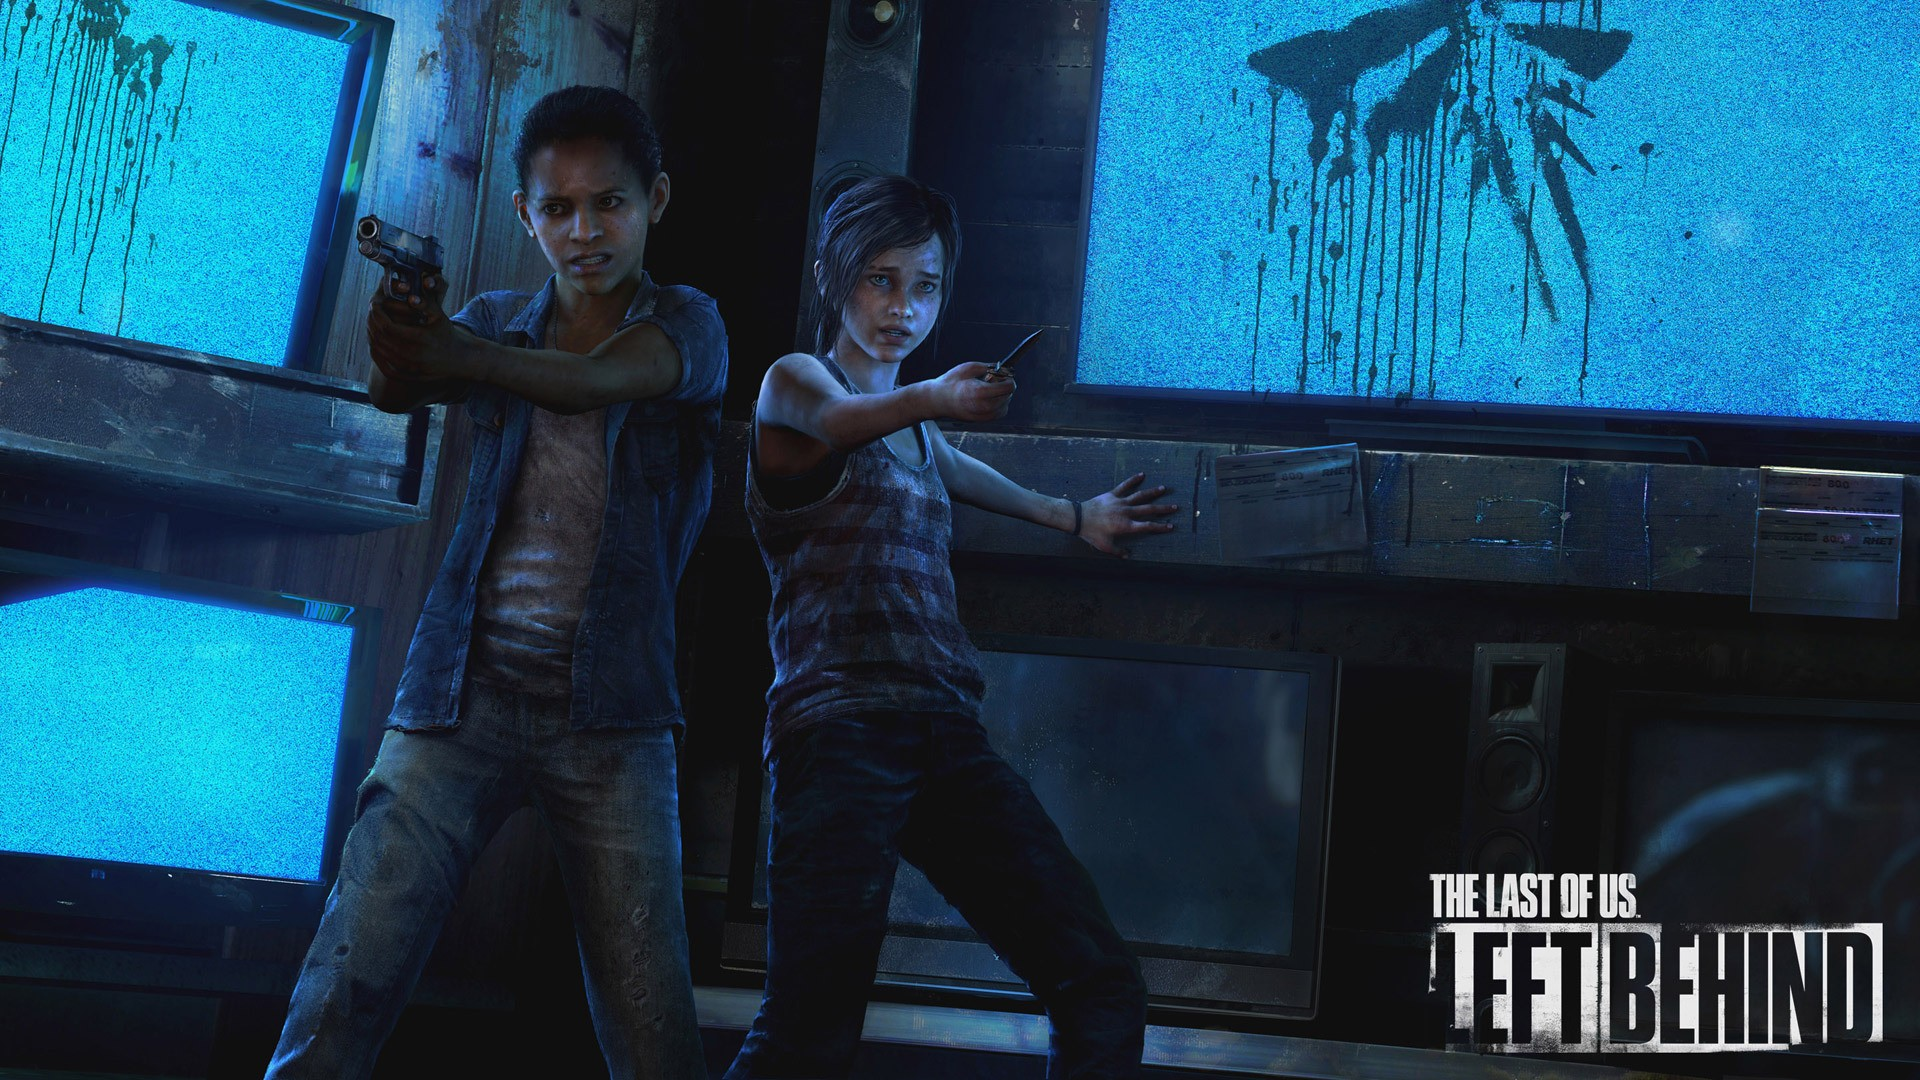 General 1920x1080 girls with guns pistol The Last of Us Ellie